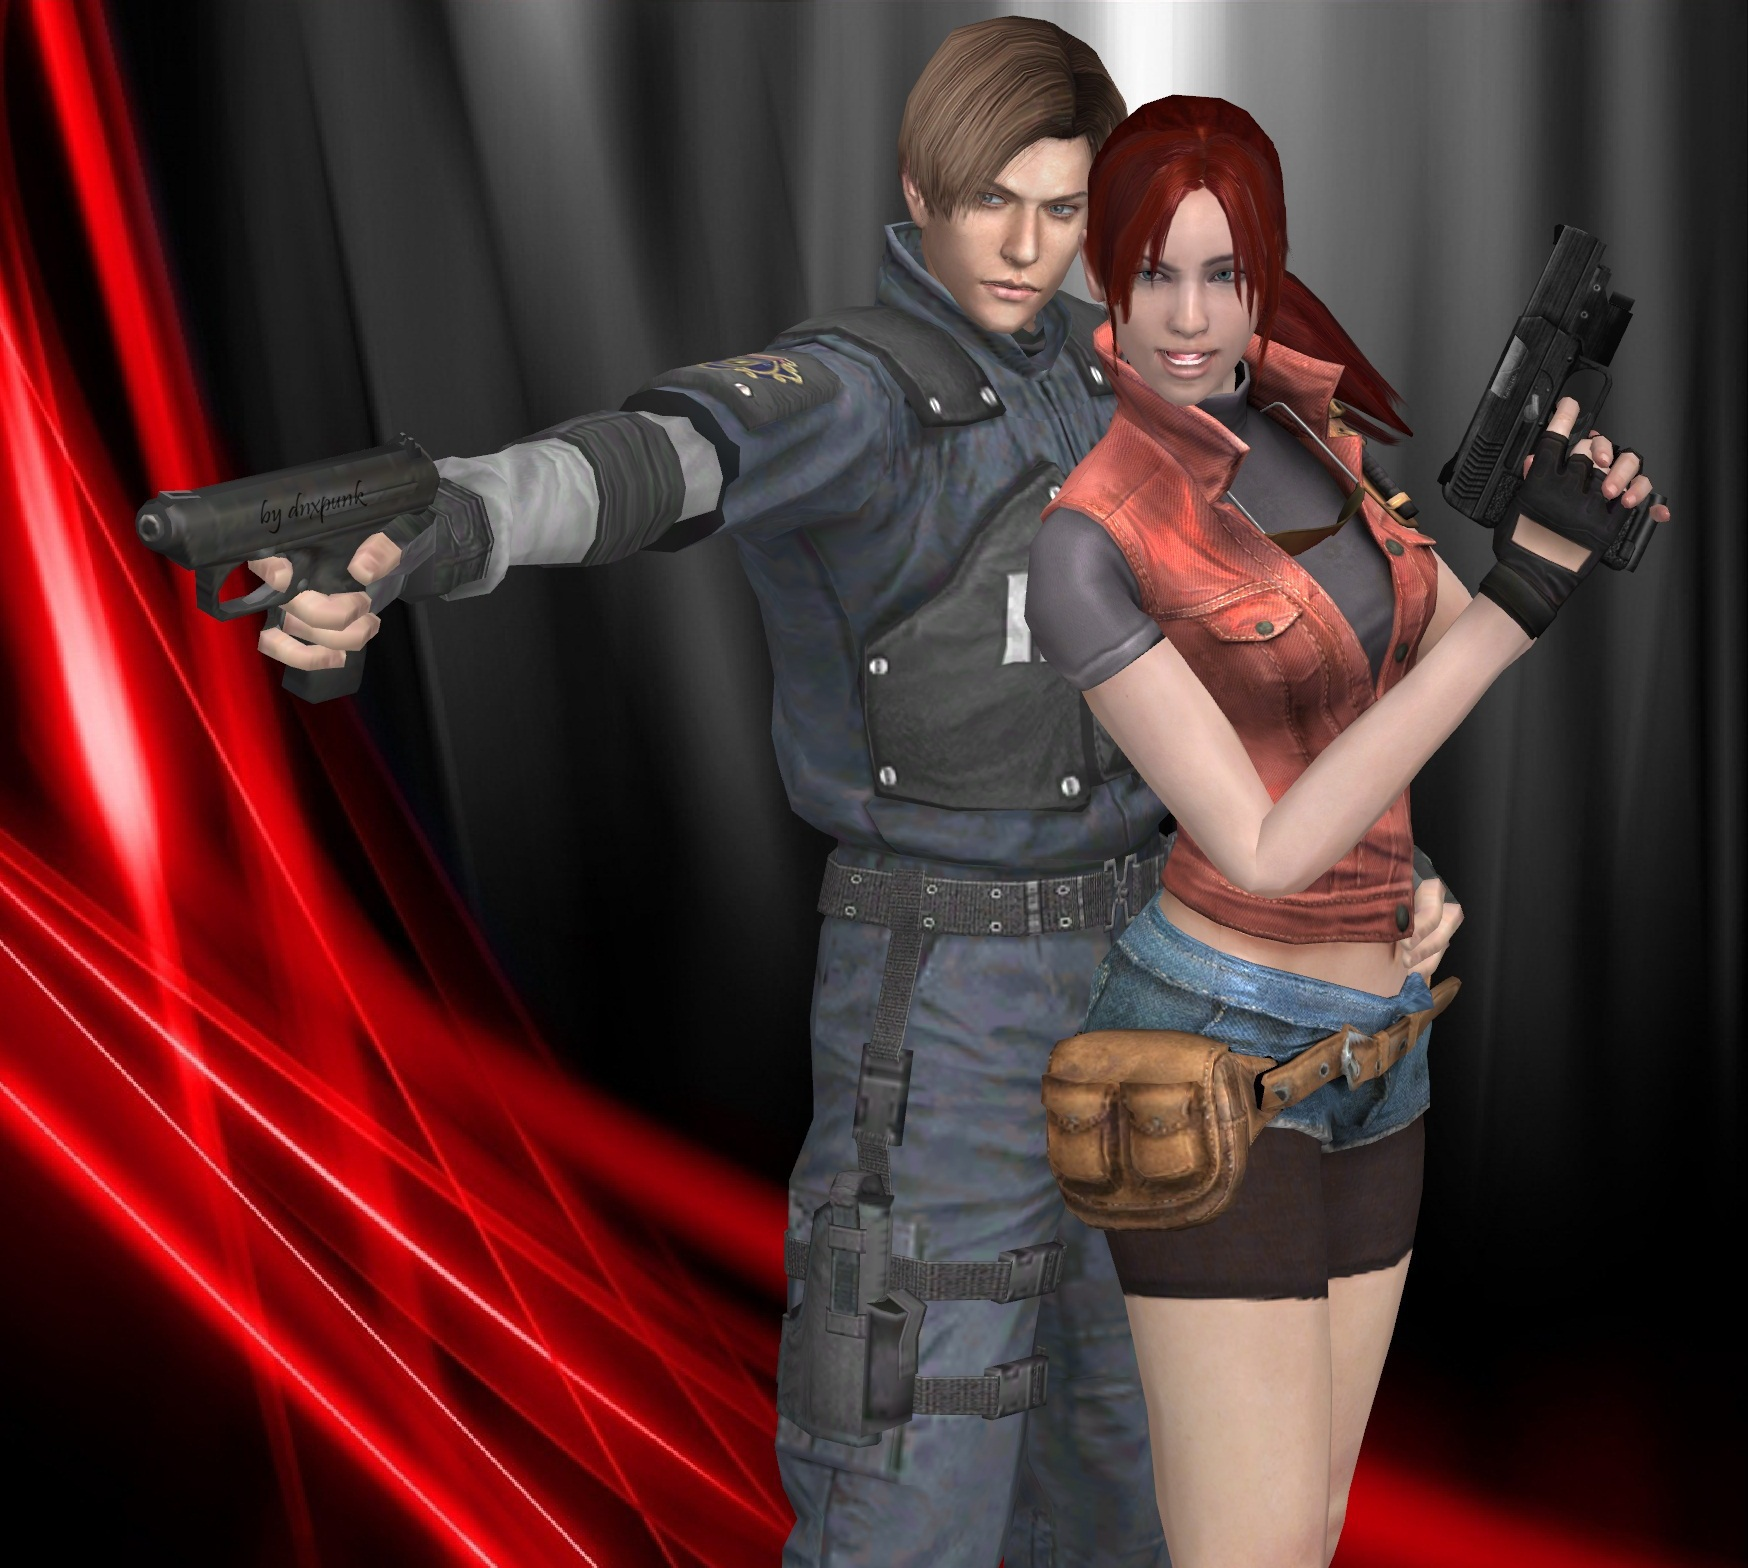 leon kennedy and claire redfield relationship with god